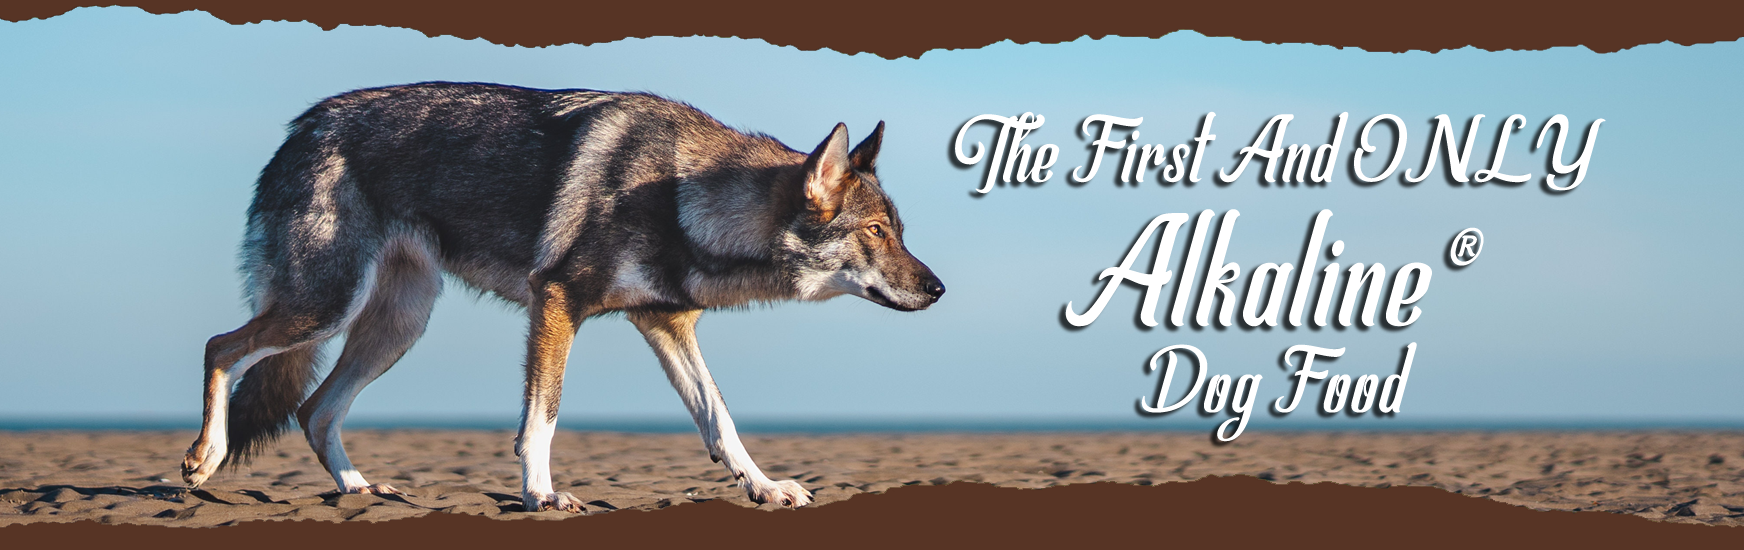 The First and Only Alkaline Dog Food